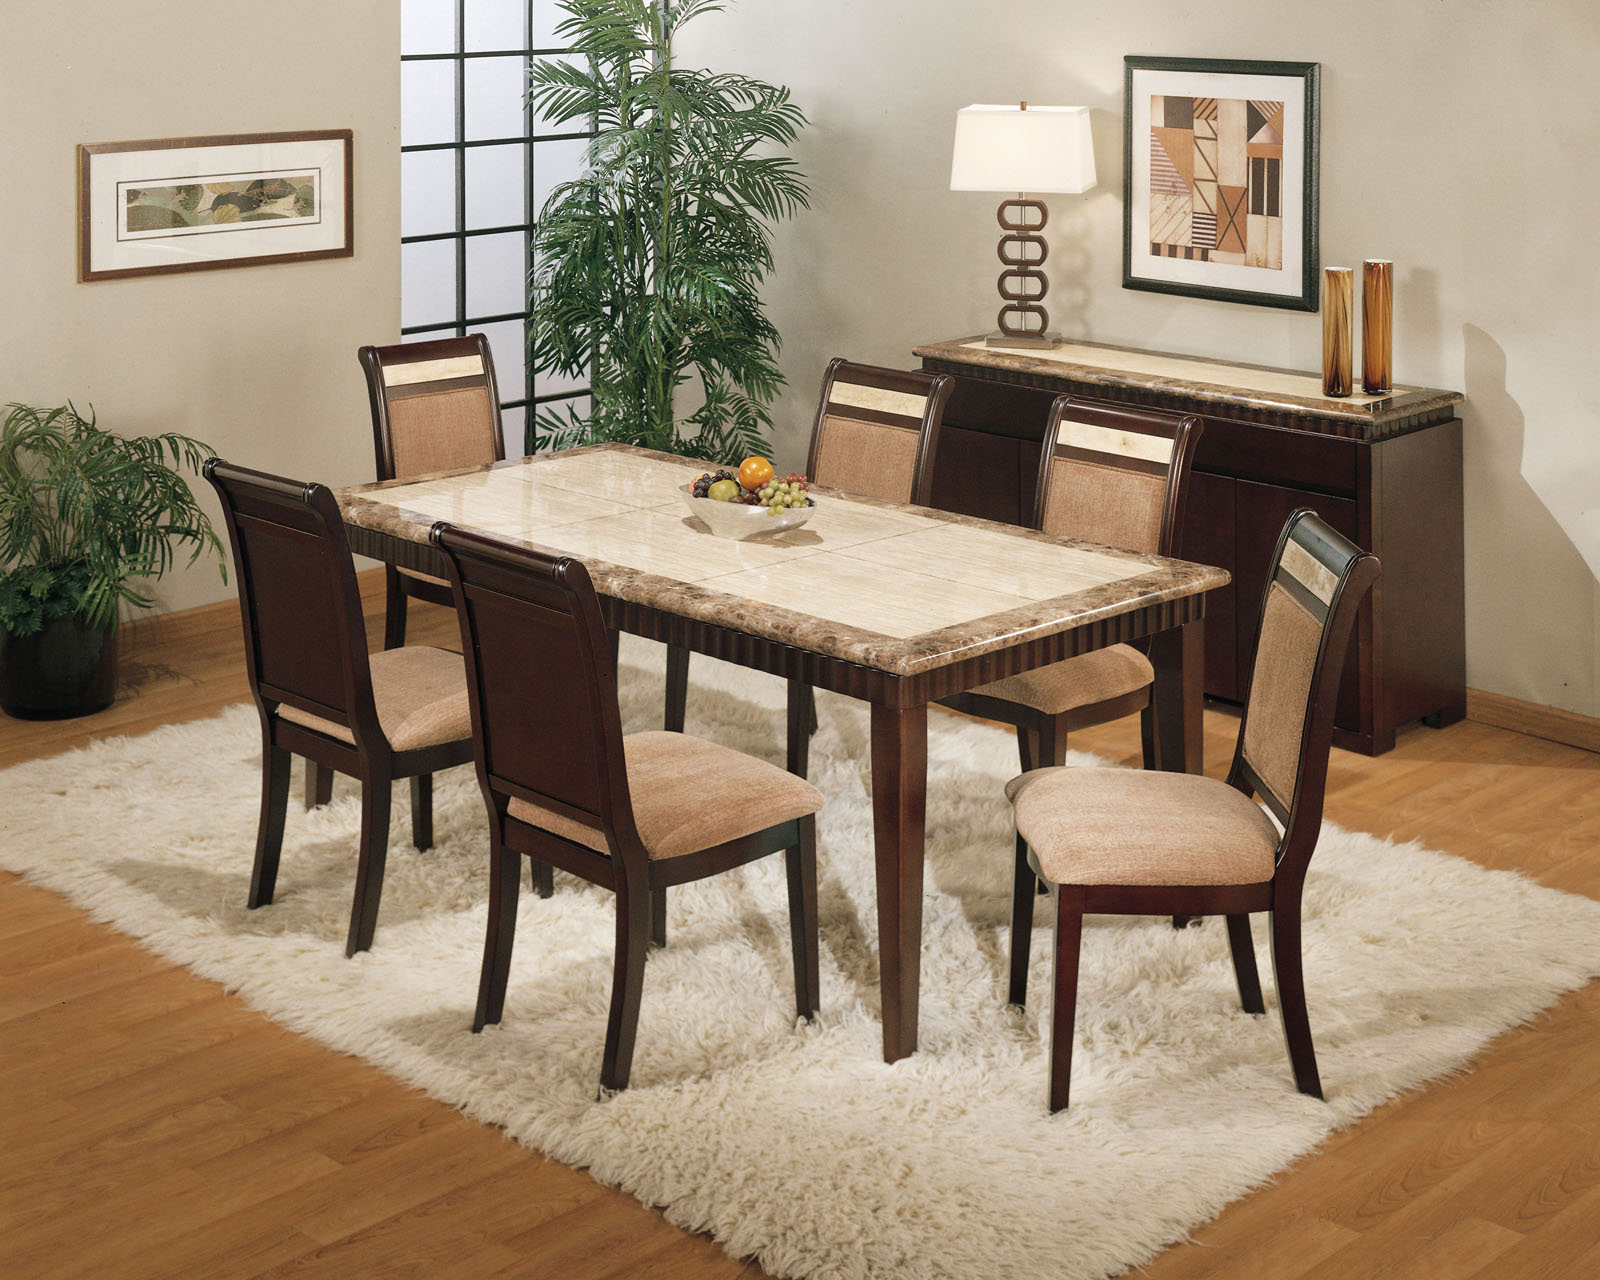 Granite Dining Room Tables And Chairs Granite Dining Table Set  Collection Of Best Home Design Ideas.